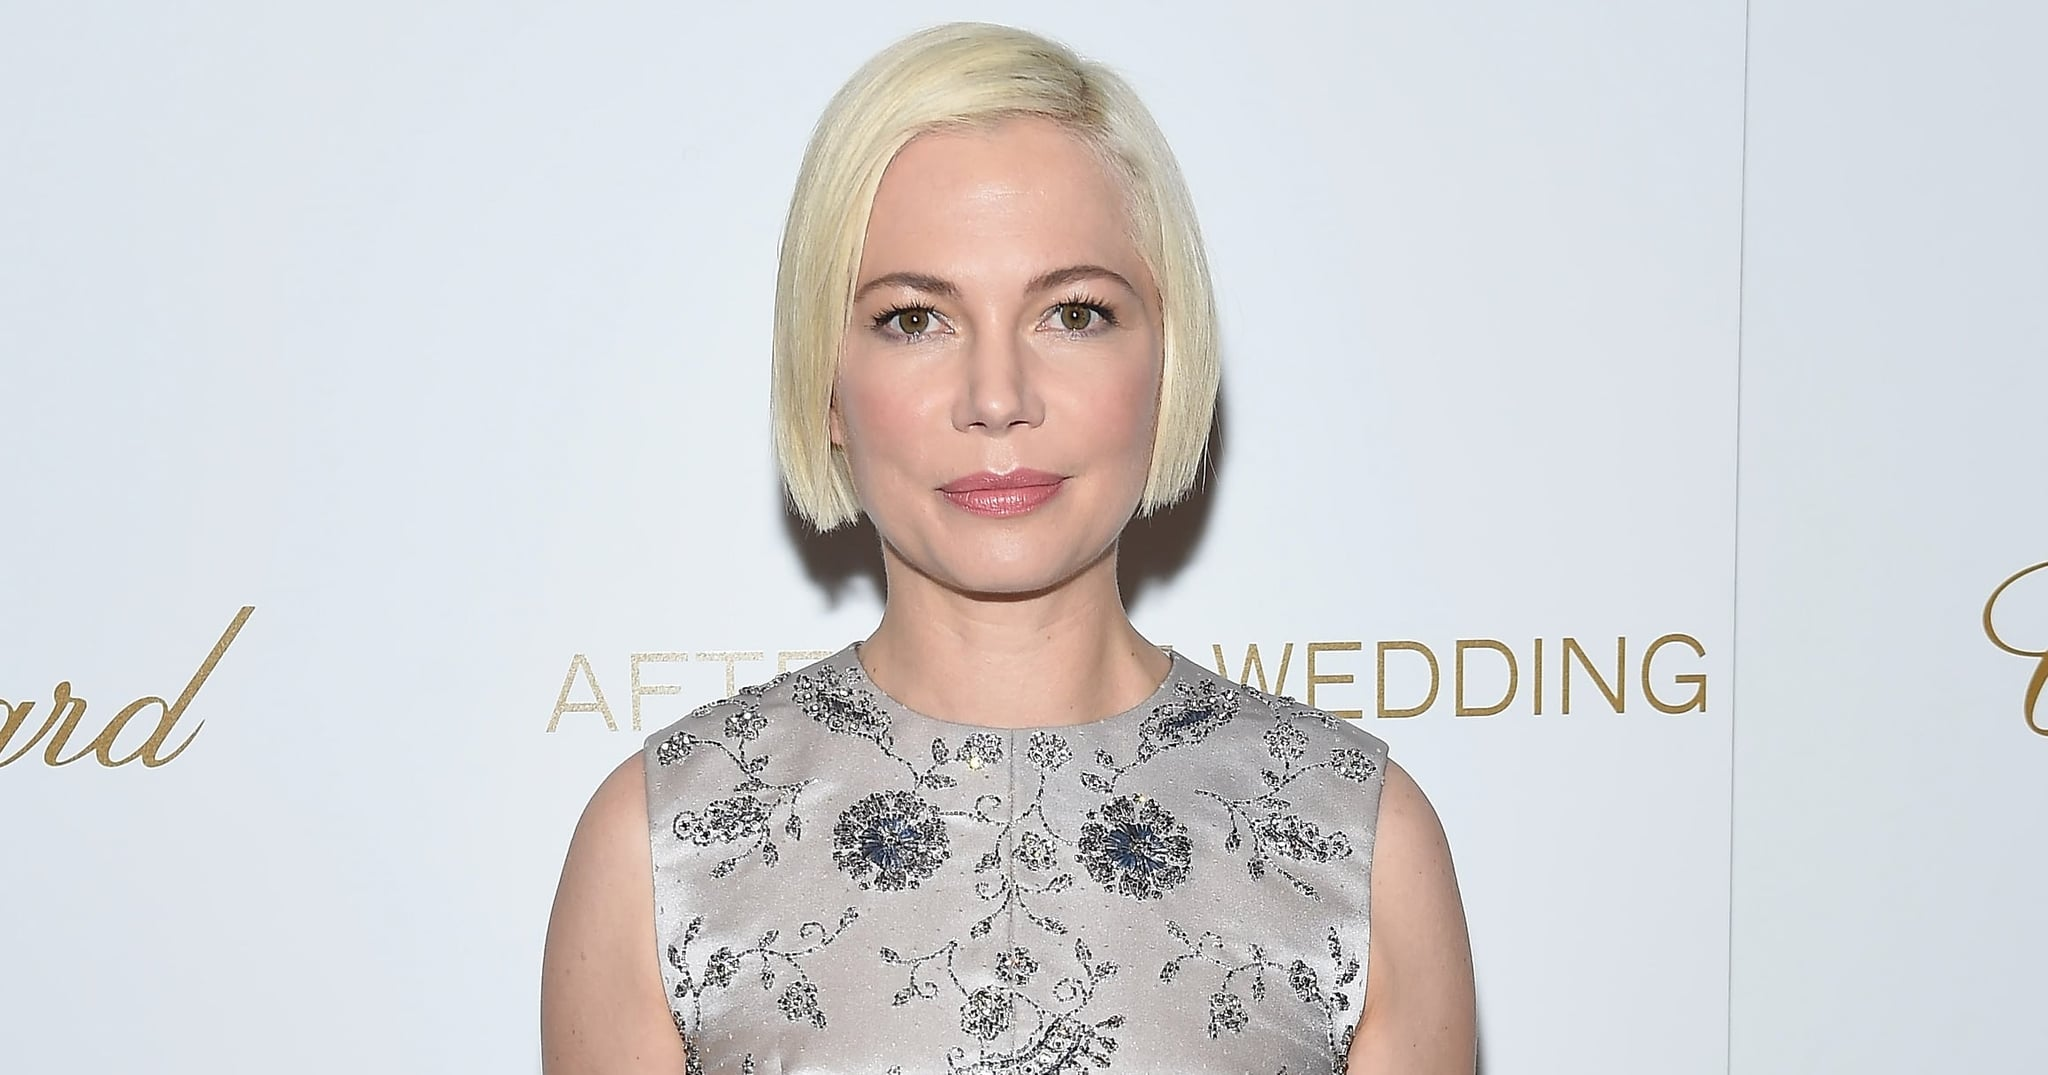 Michelle Williams Discusses Her Career After Dawson's Creek